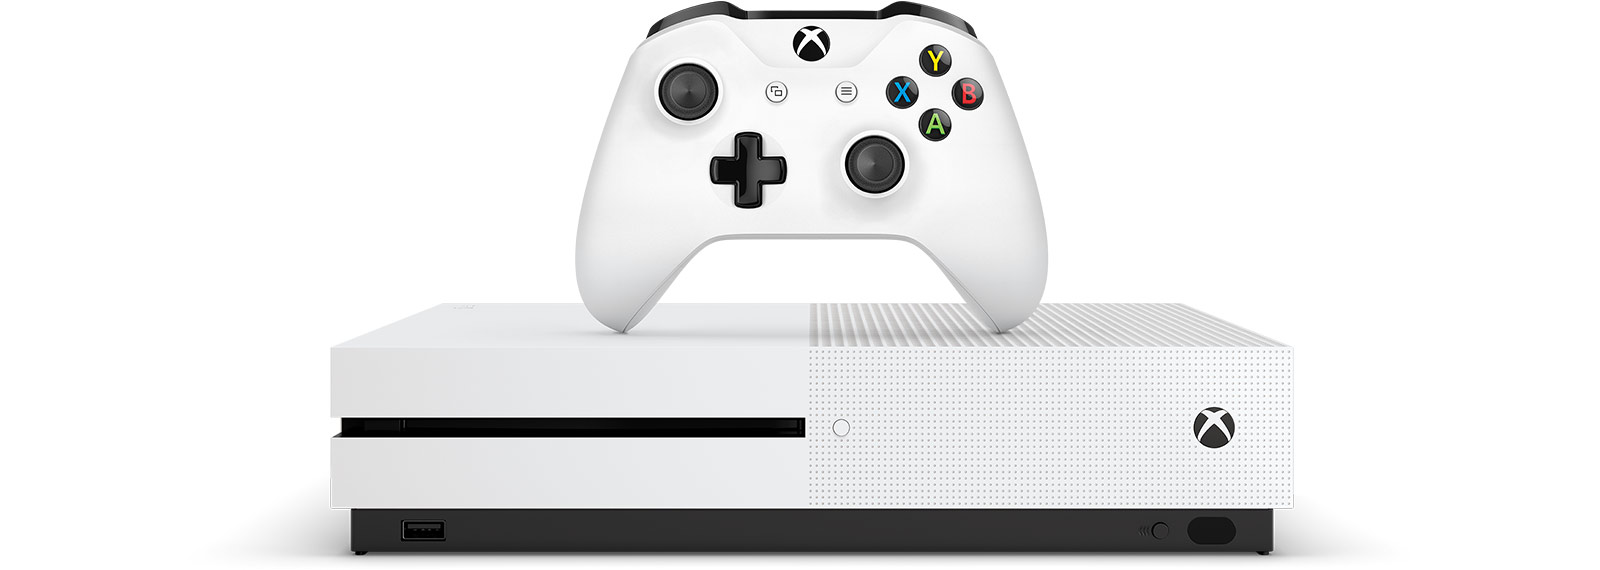 Xbox One S: Family Game Console.